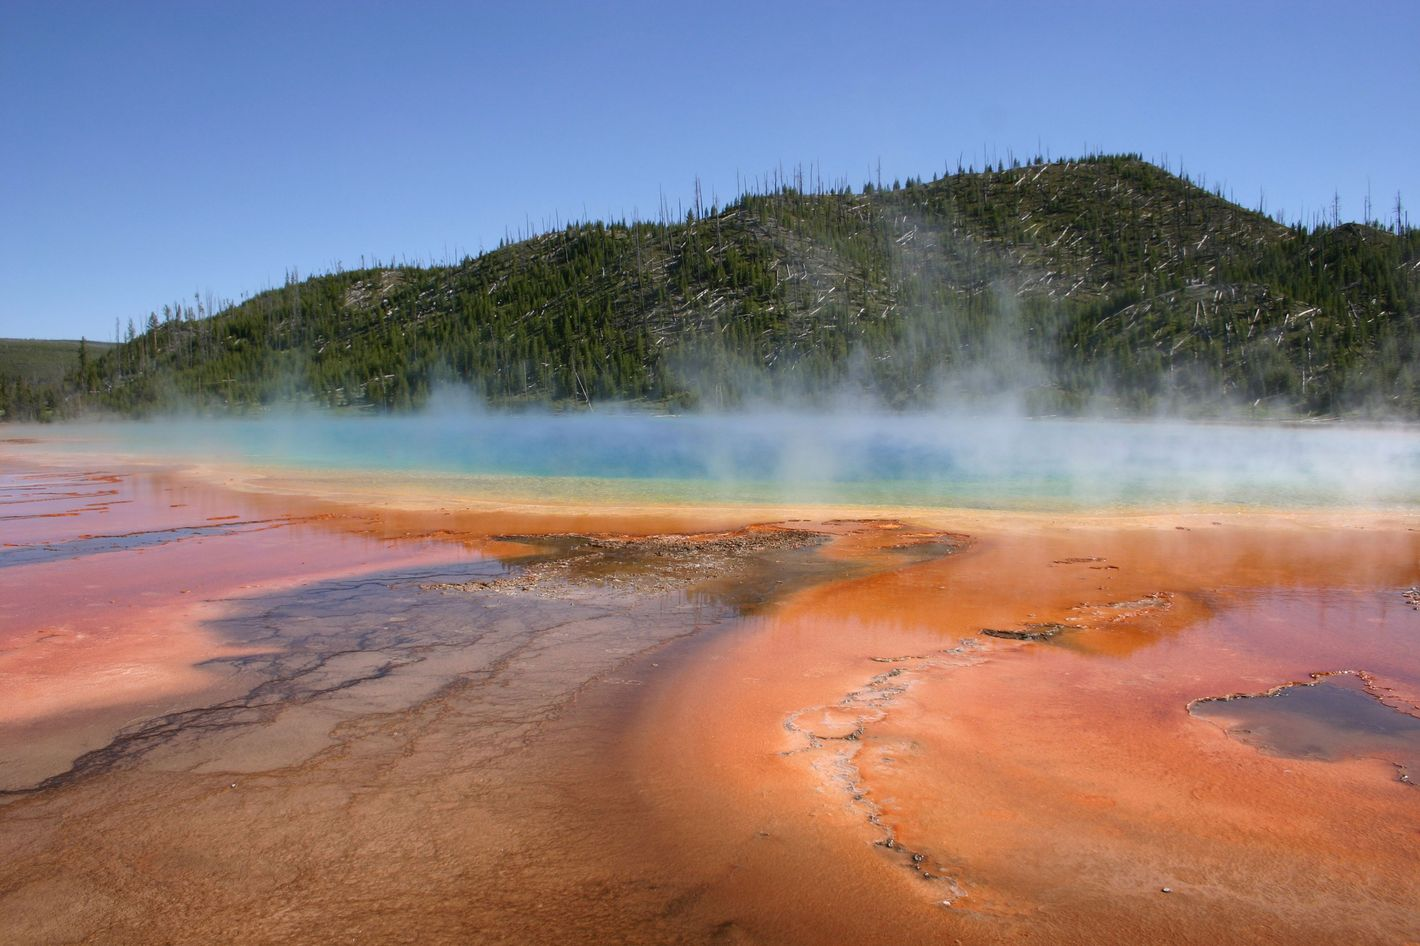 yellowstone super volcano Three videos featuring a usgs scientist who explains the historic and current volcanic activity beneath yellowstone park.